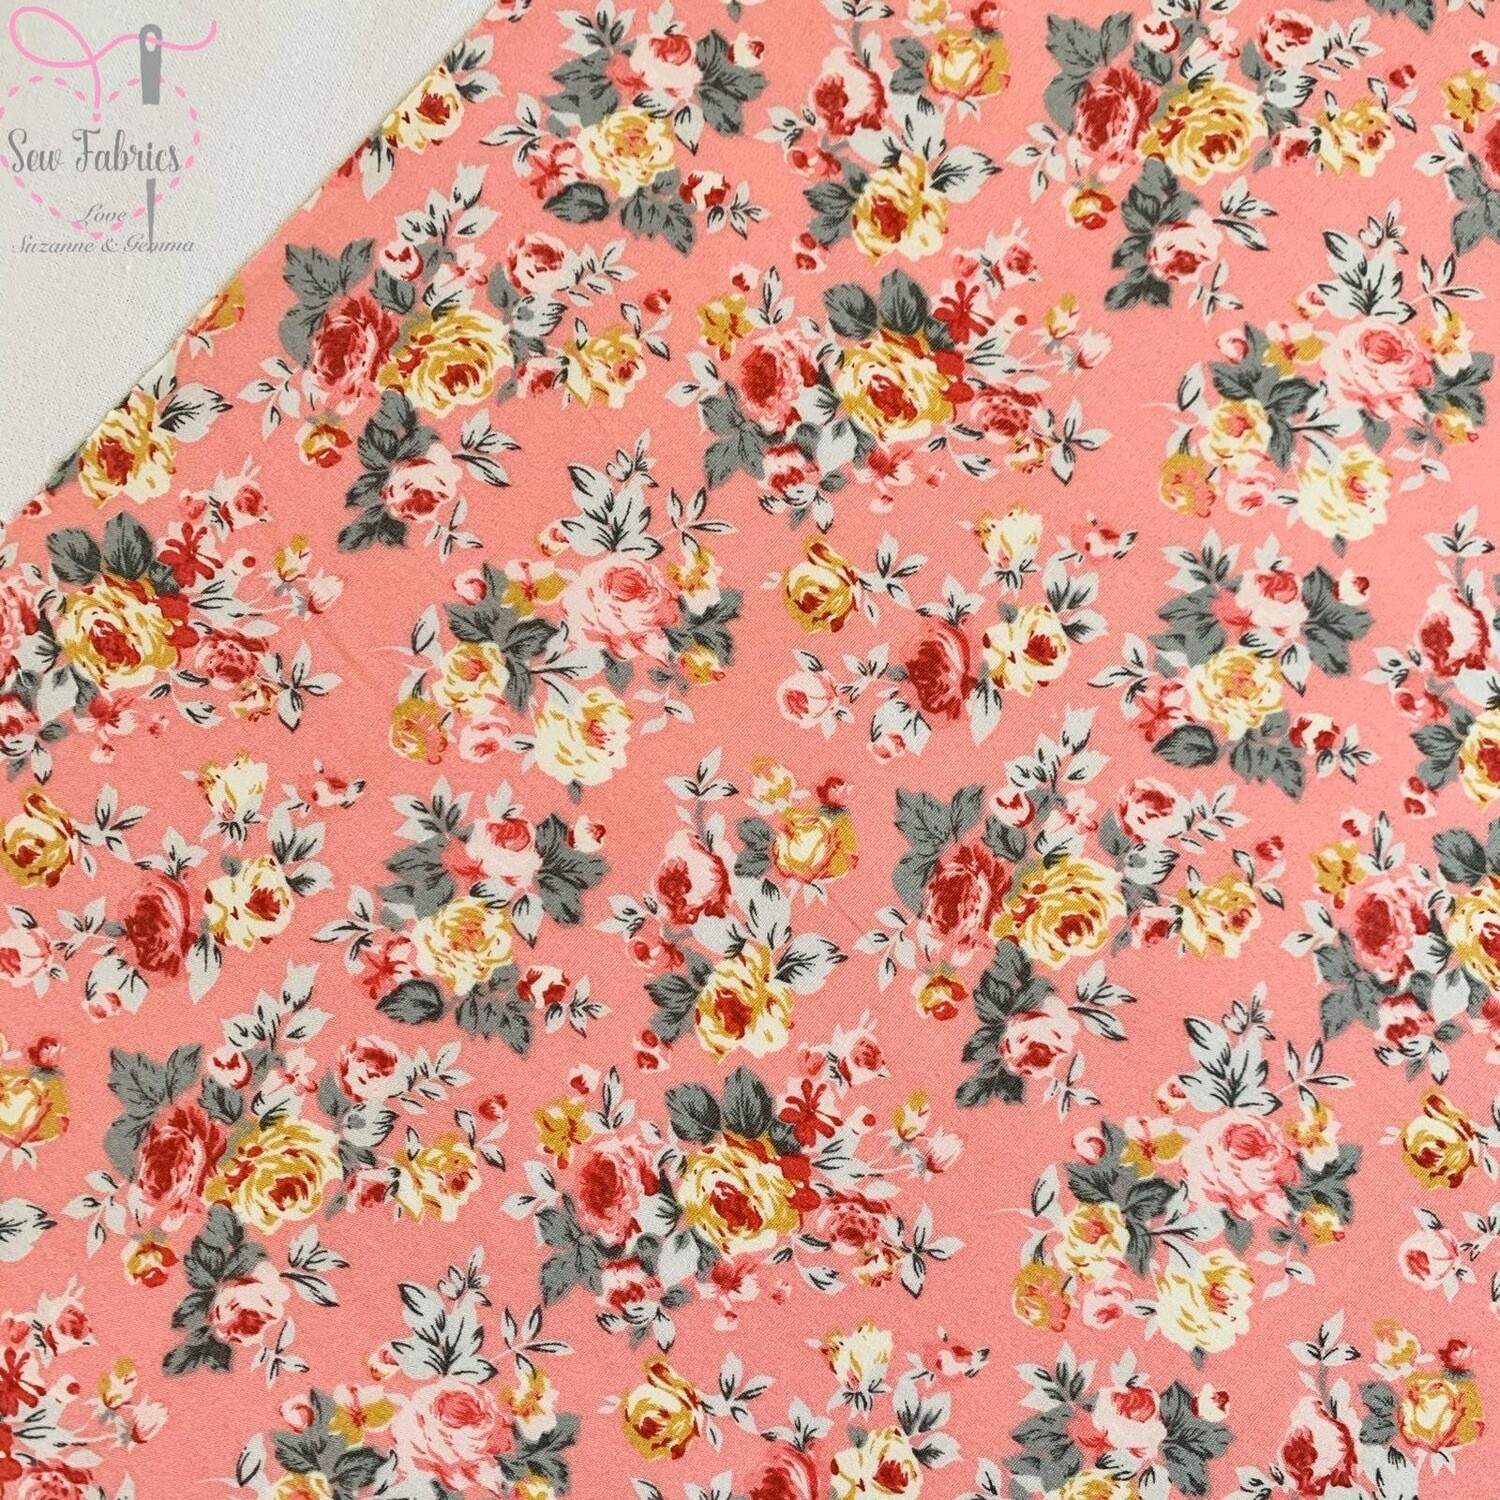 Rose and Hubble Rose Pink Bunch of Peonies Floral Fabric Vintage Floral 100% Cotton Poplin Flower Material Sewing